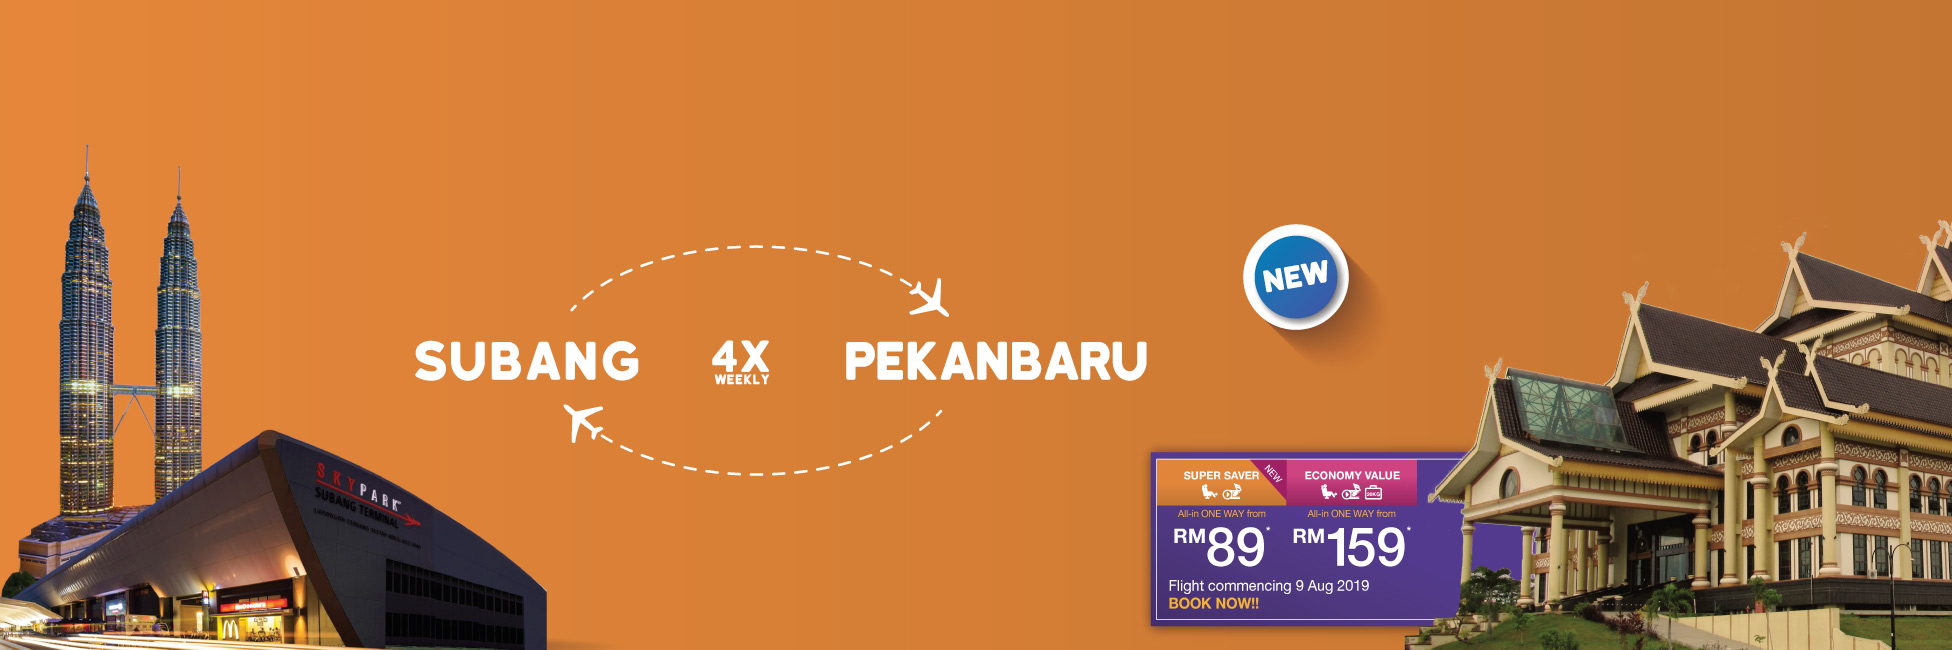 Malindo Air - Smarter Way To Travel